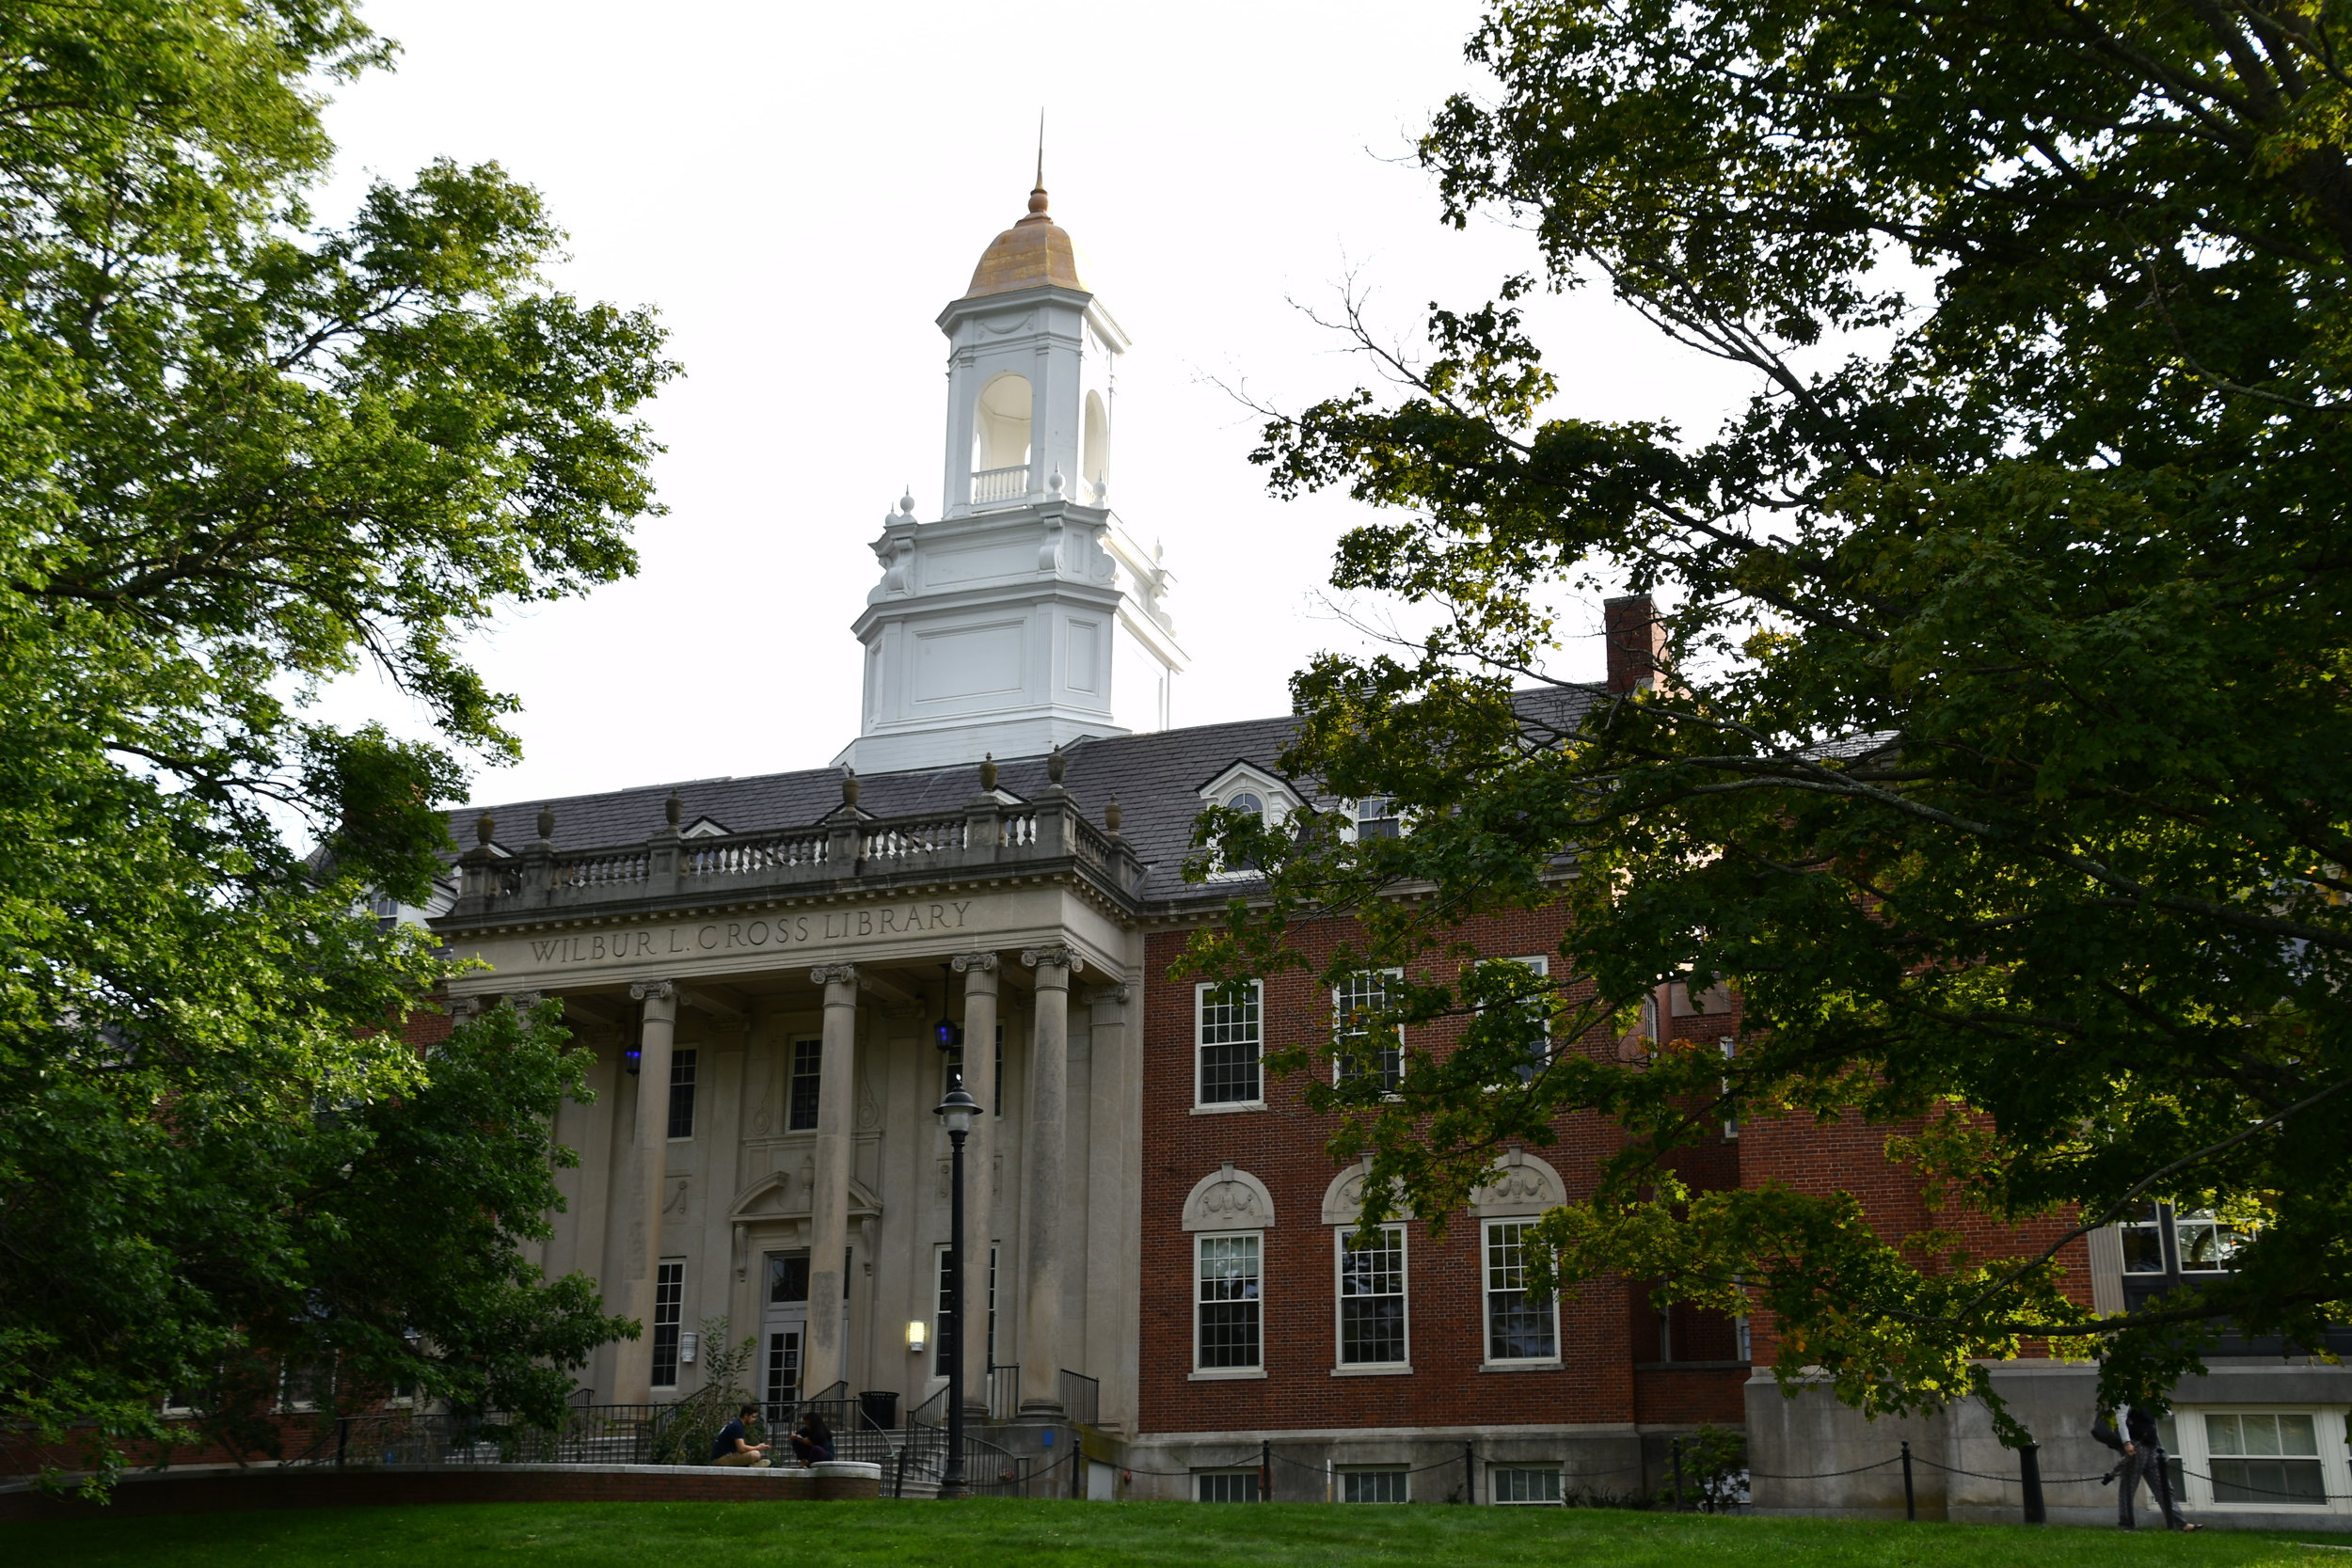 UConn will be the center the New England Humanities Consortium for the organization through 2020 according to the NEHC's website. (Julie Spillane/The Daily Campus)